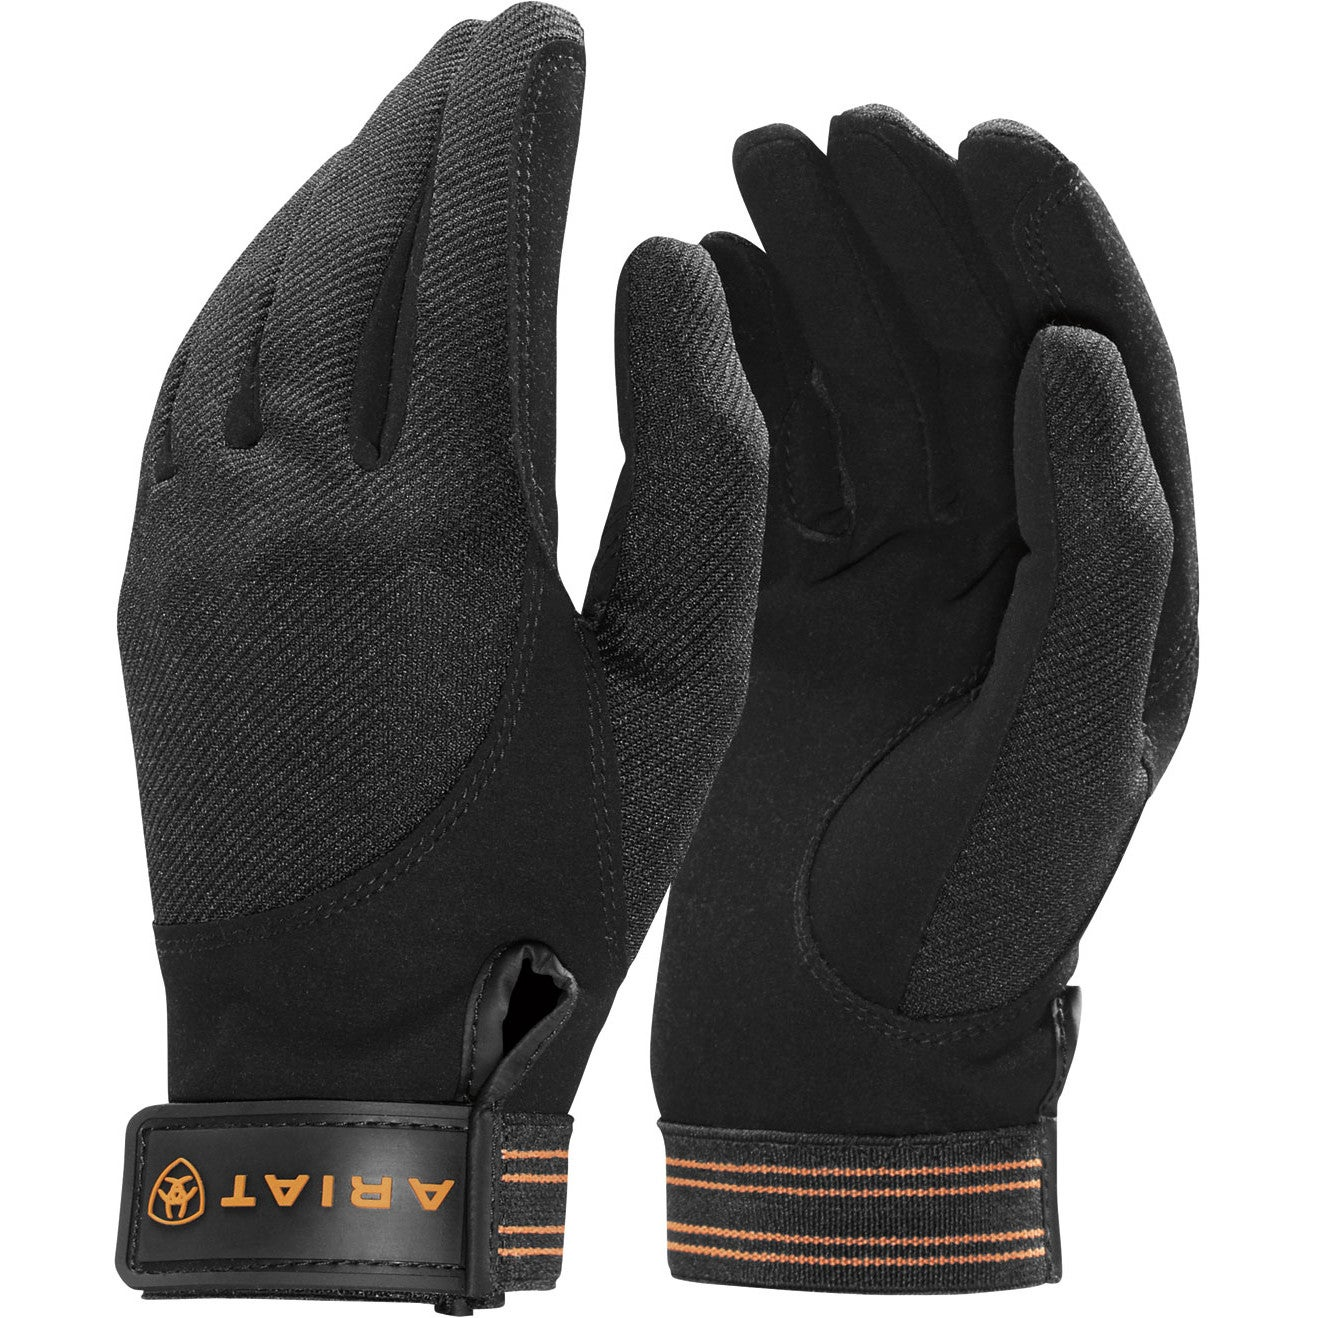 Ariat Tek Grip Riding Gloves